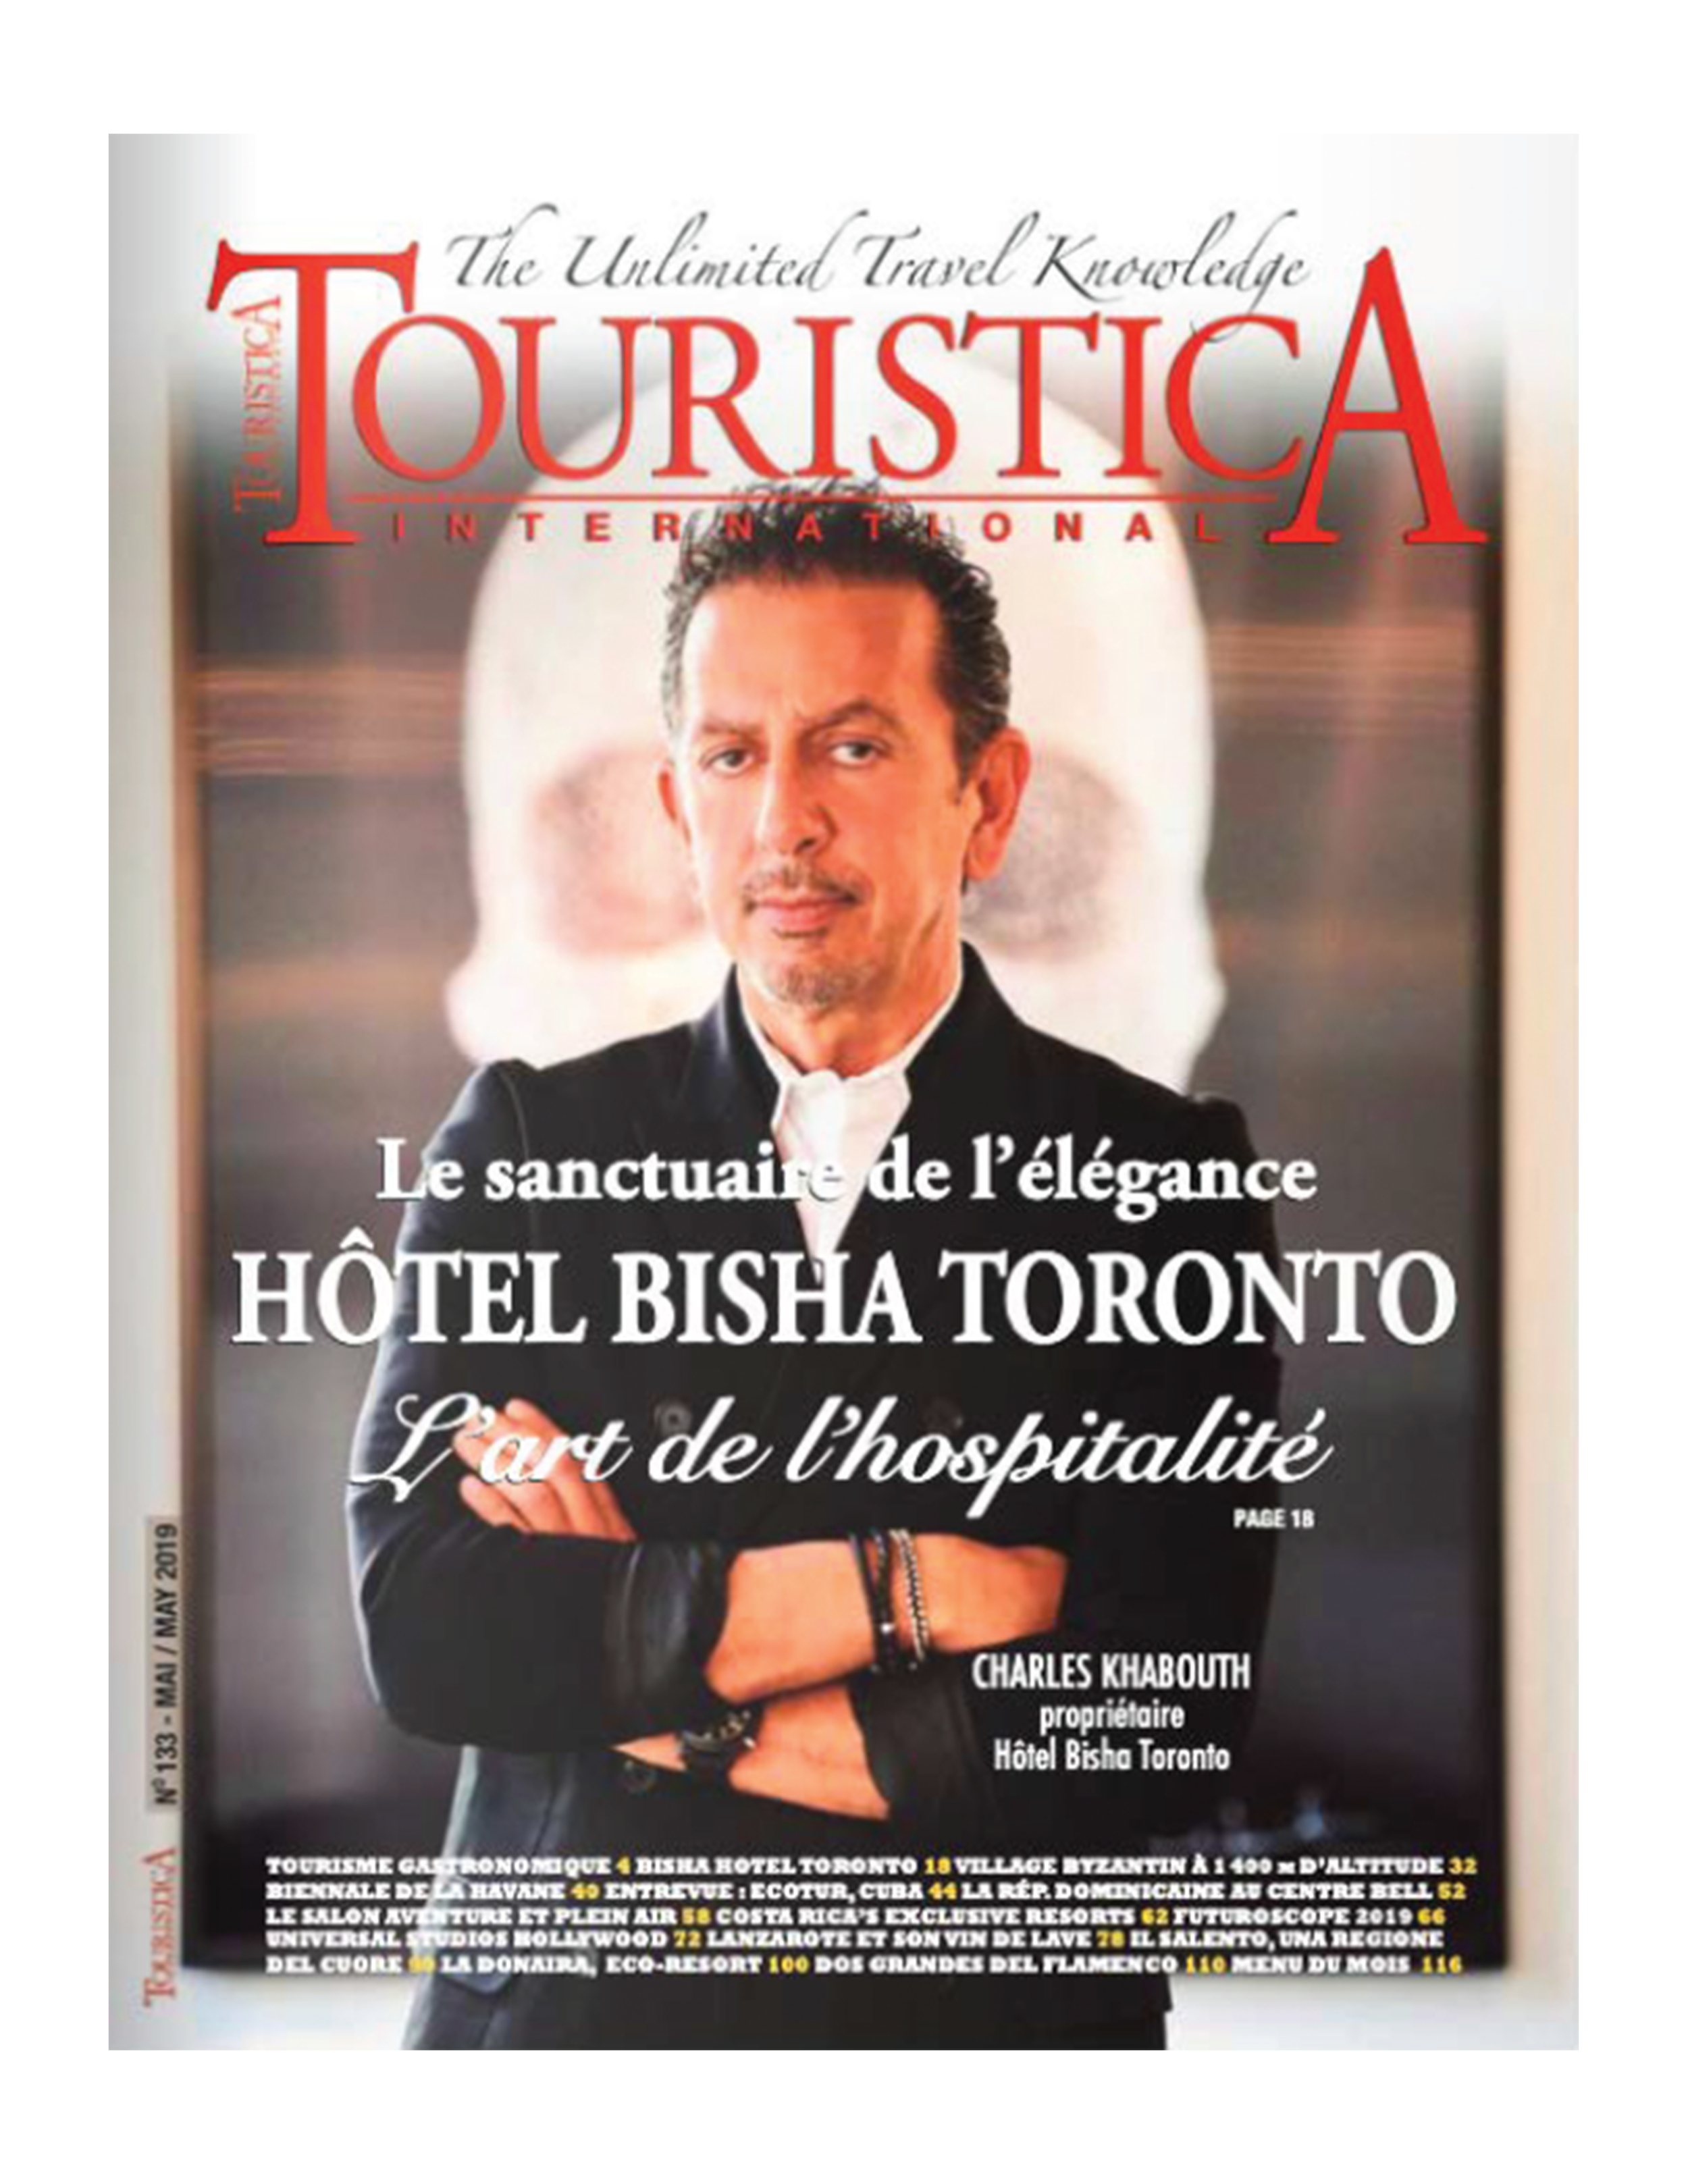 TOURISTICA INTERNATIONAL